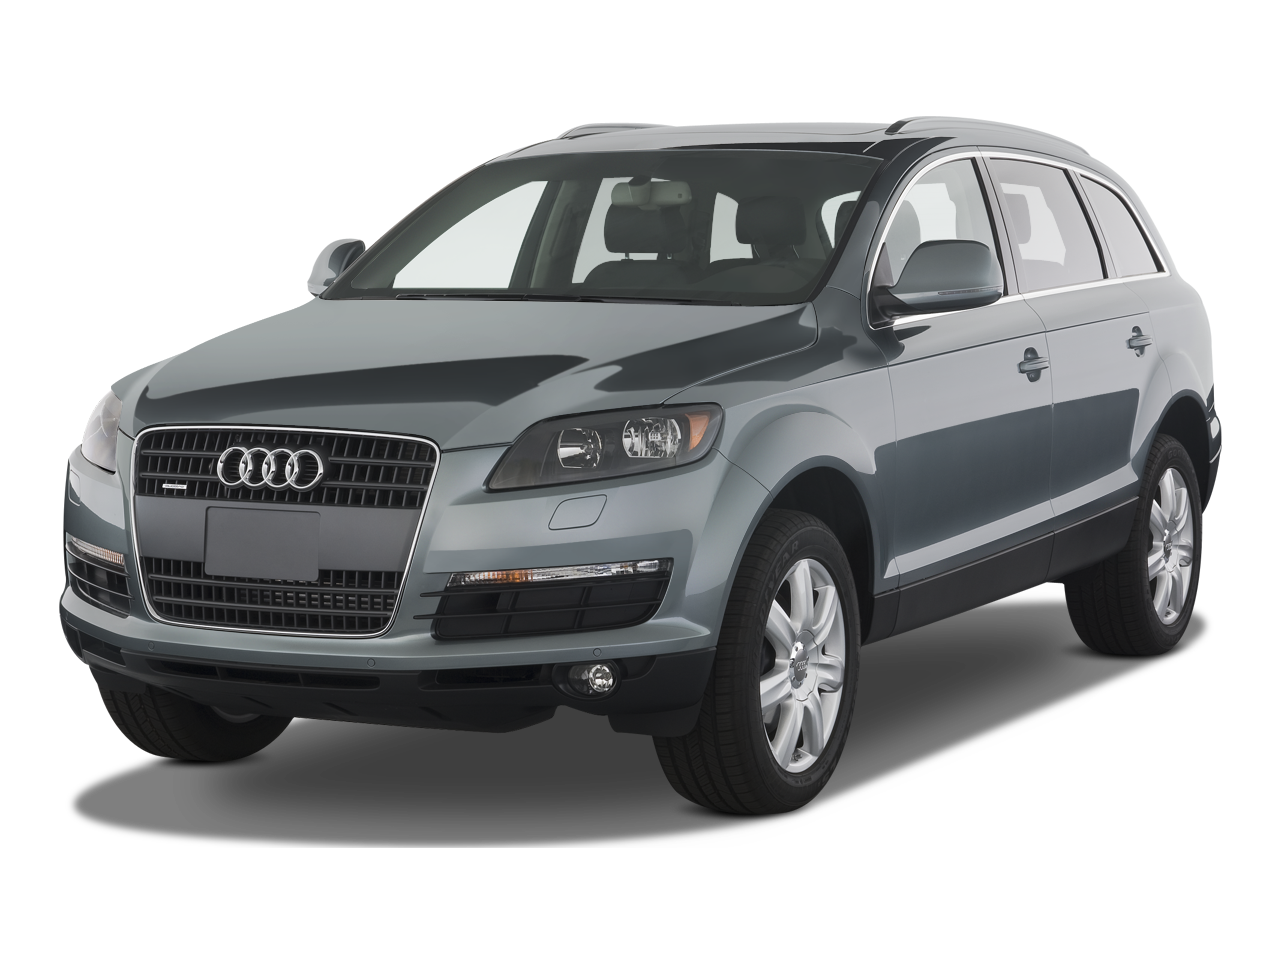 2009 Audi Q7 V-12 TDI - New and Future Cars, Trucks, and SUVs - Automobile Magazine